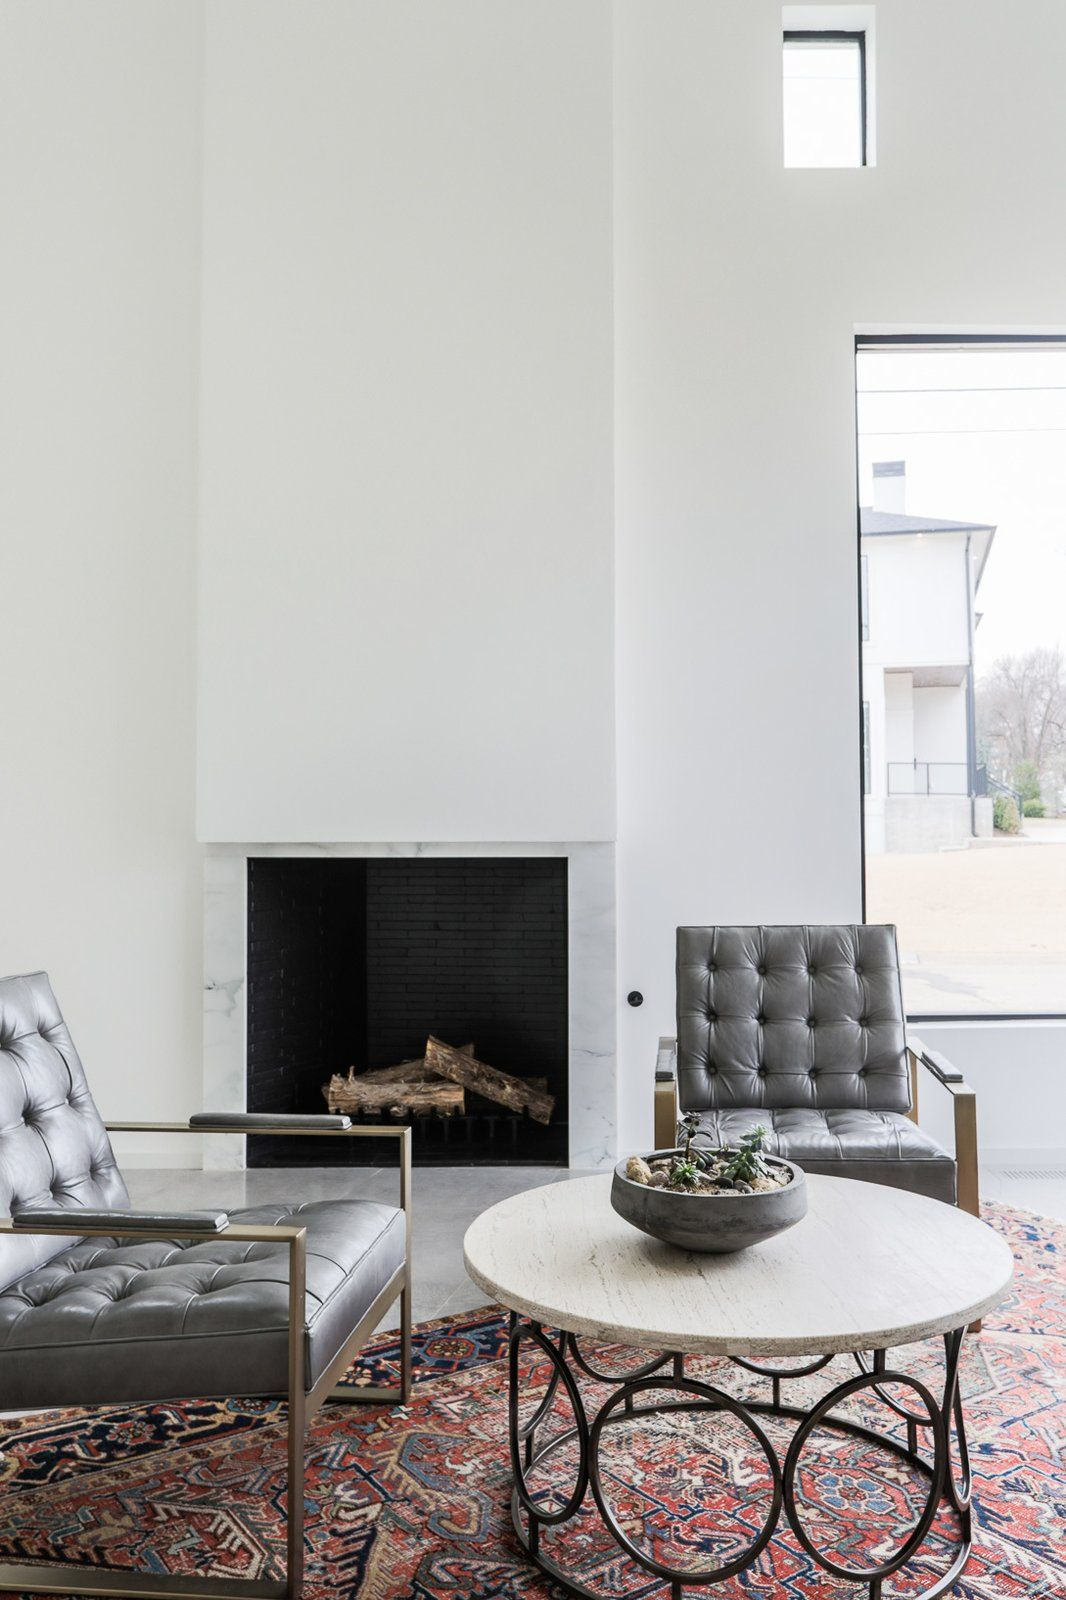 5 Homes With Cozy Modern Fireplaces Living Room Designs Modern Fireplace Fireplace Design